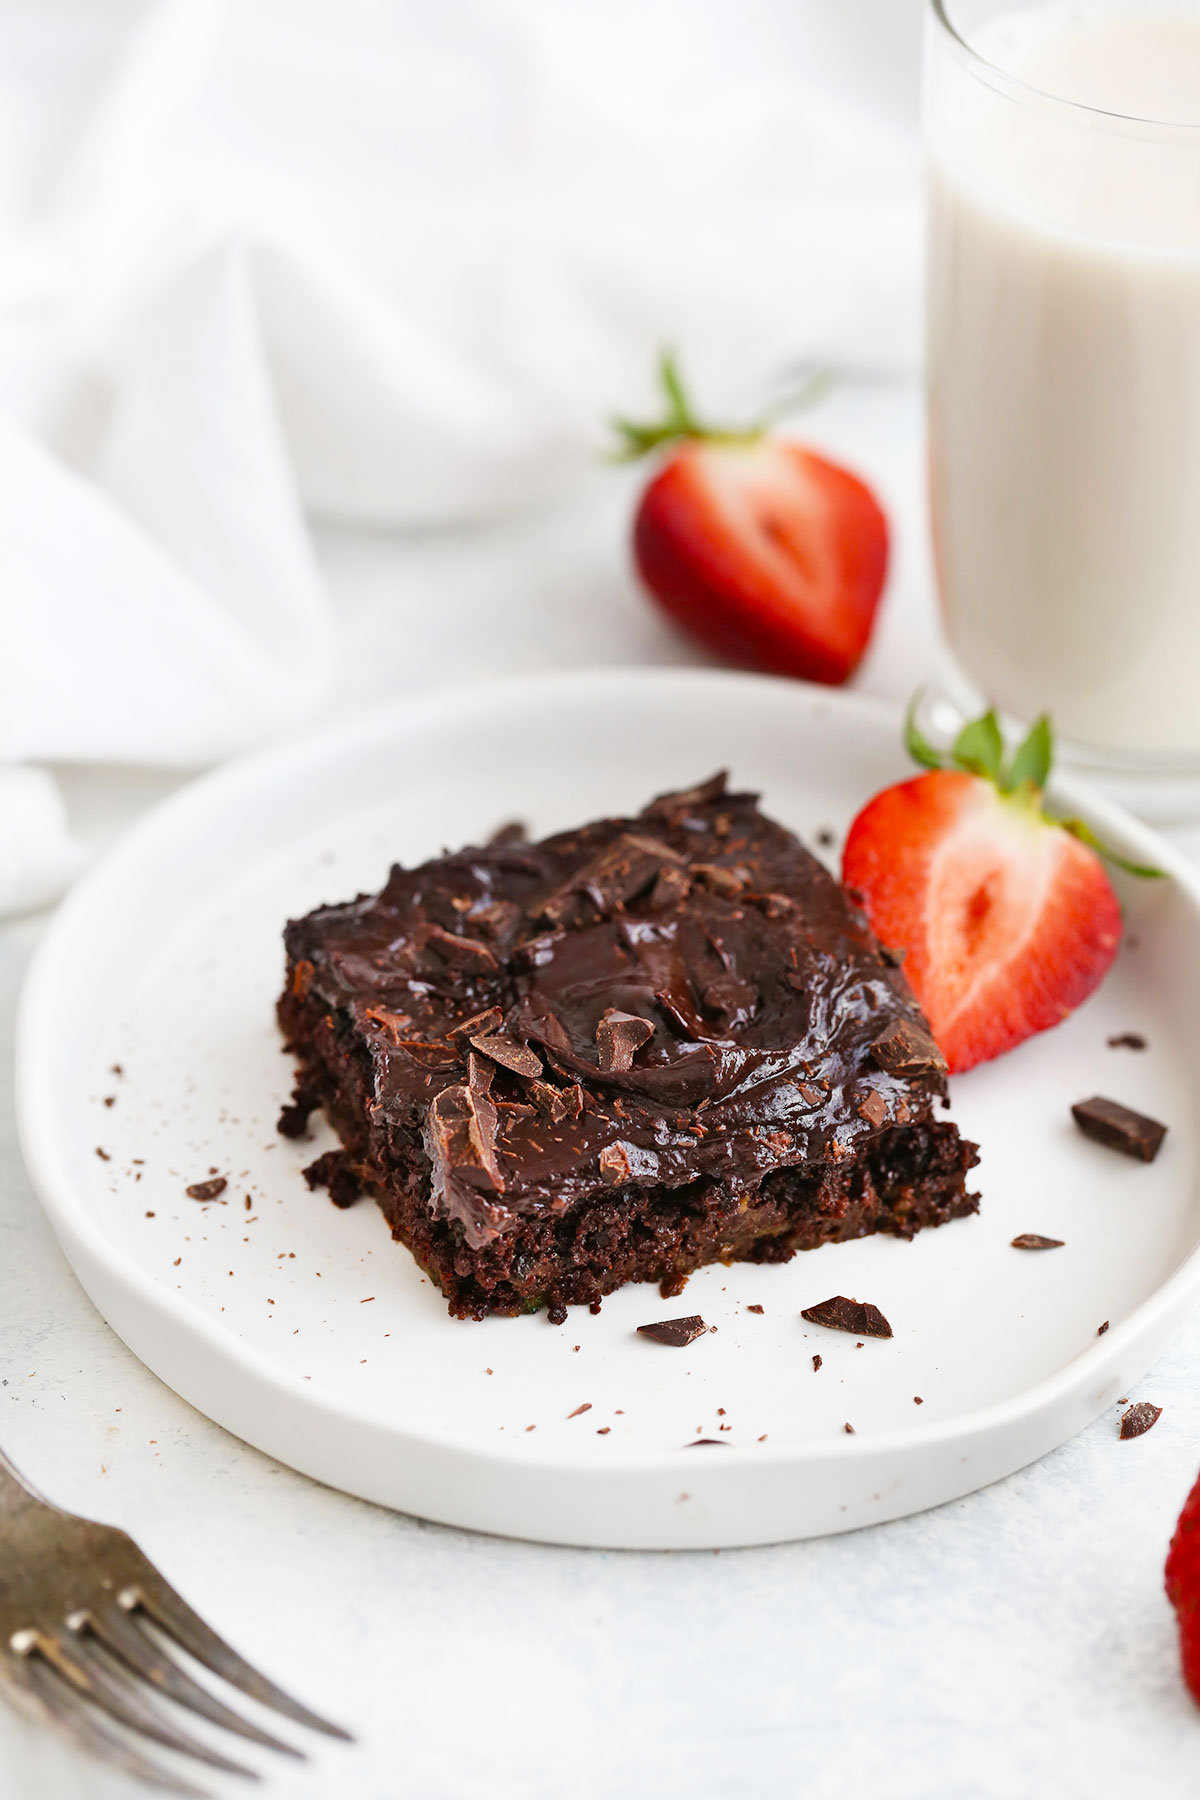 A slice of gluten free chocolate zucchini cake from One Lovely Life